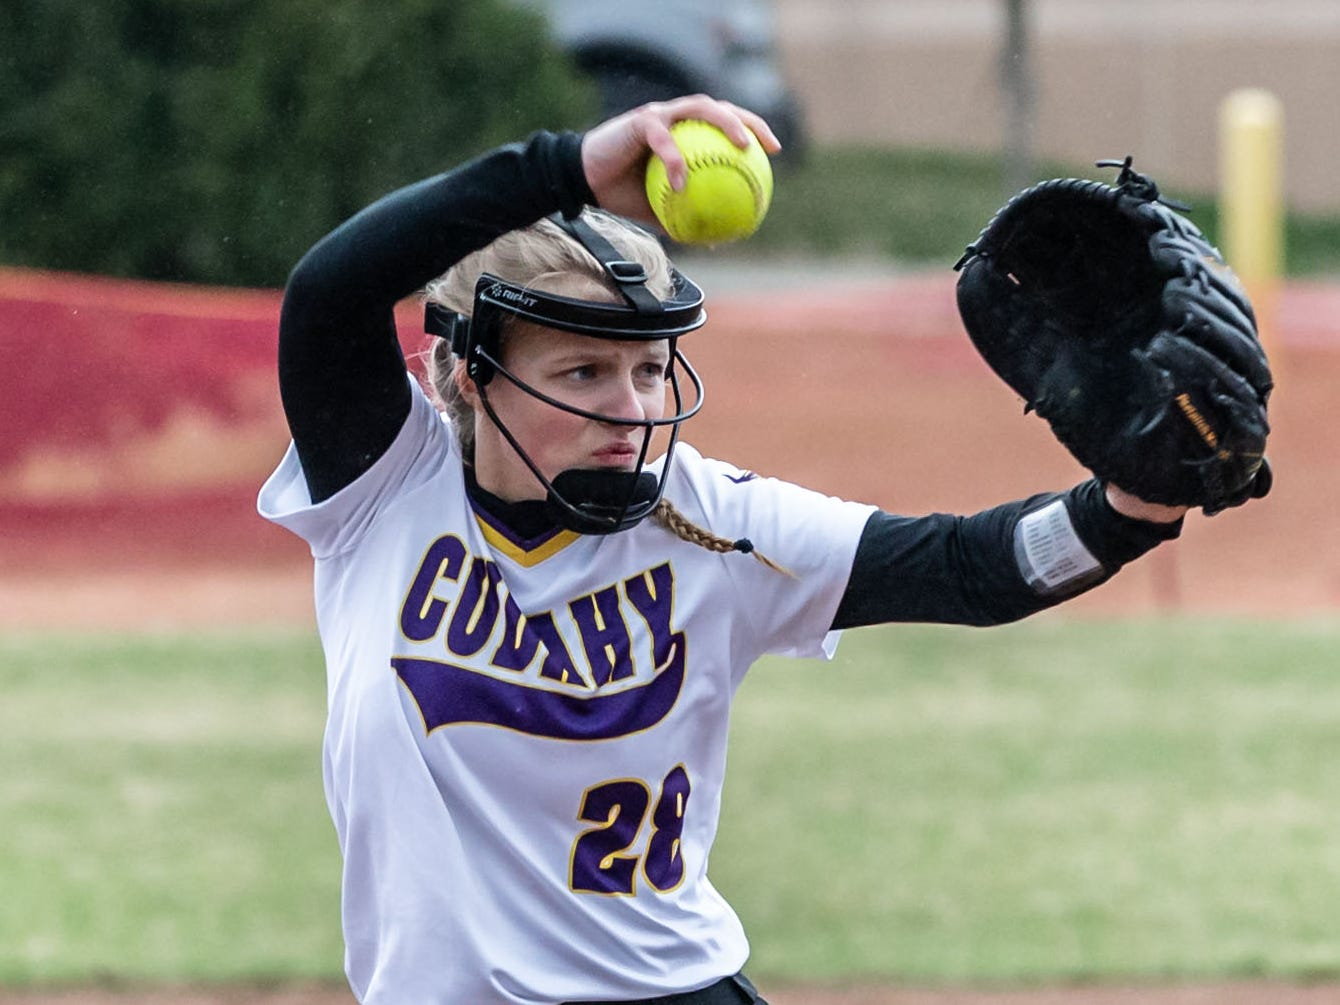 Cudahy's Makayla Bishop (28) delivers a pitch during the game at Pewaukee on Thursday, April 18, 2019.